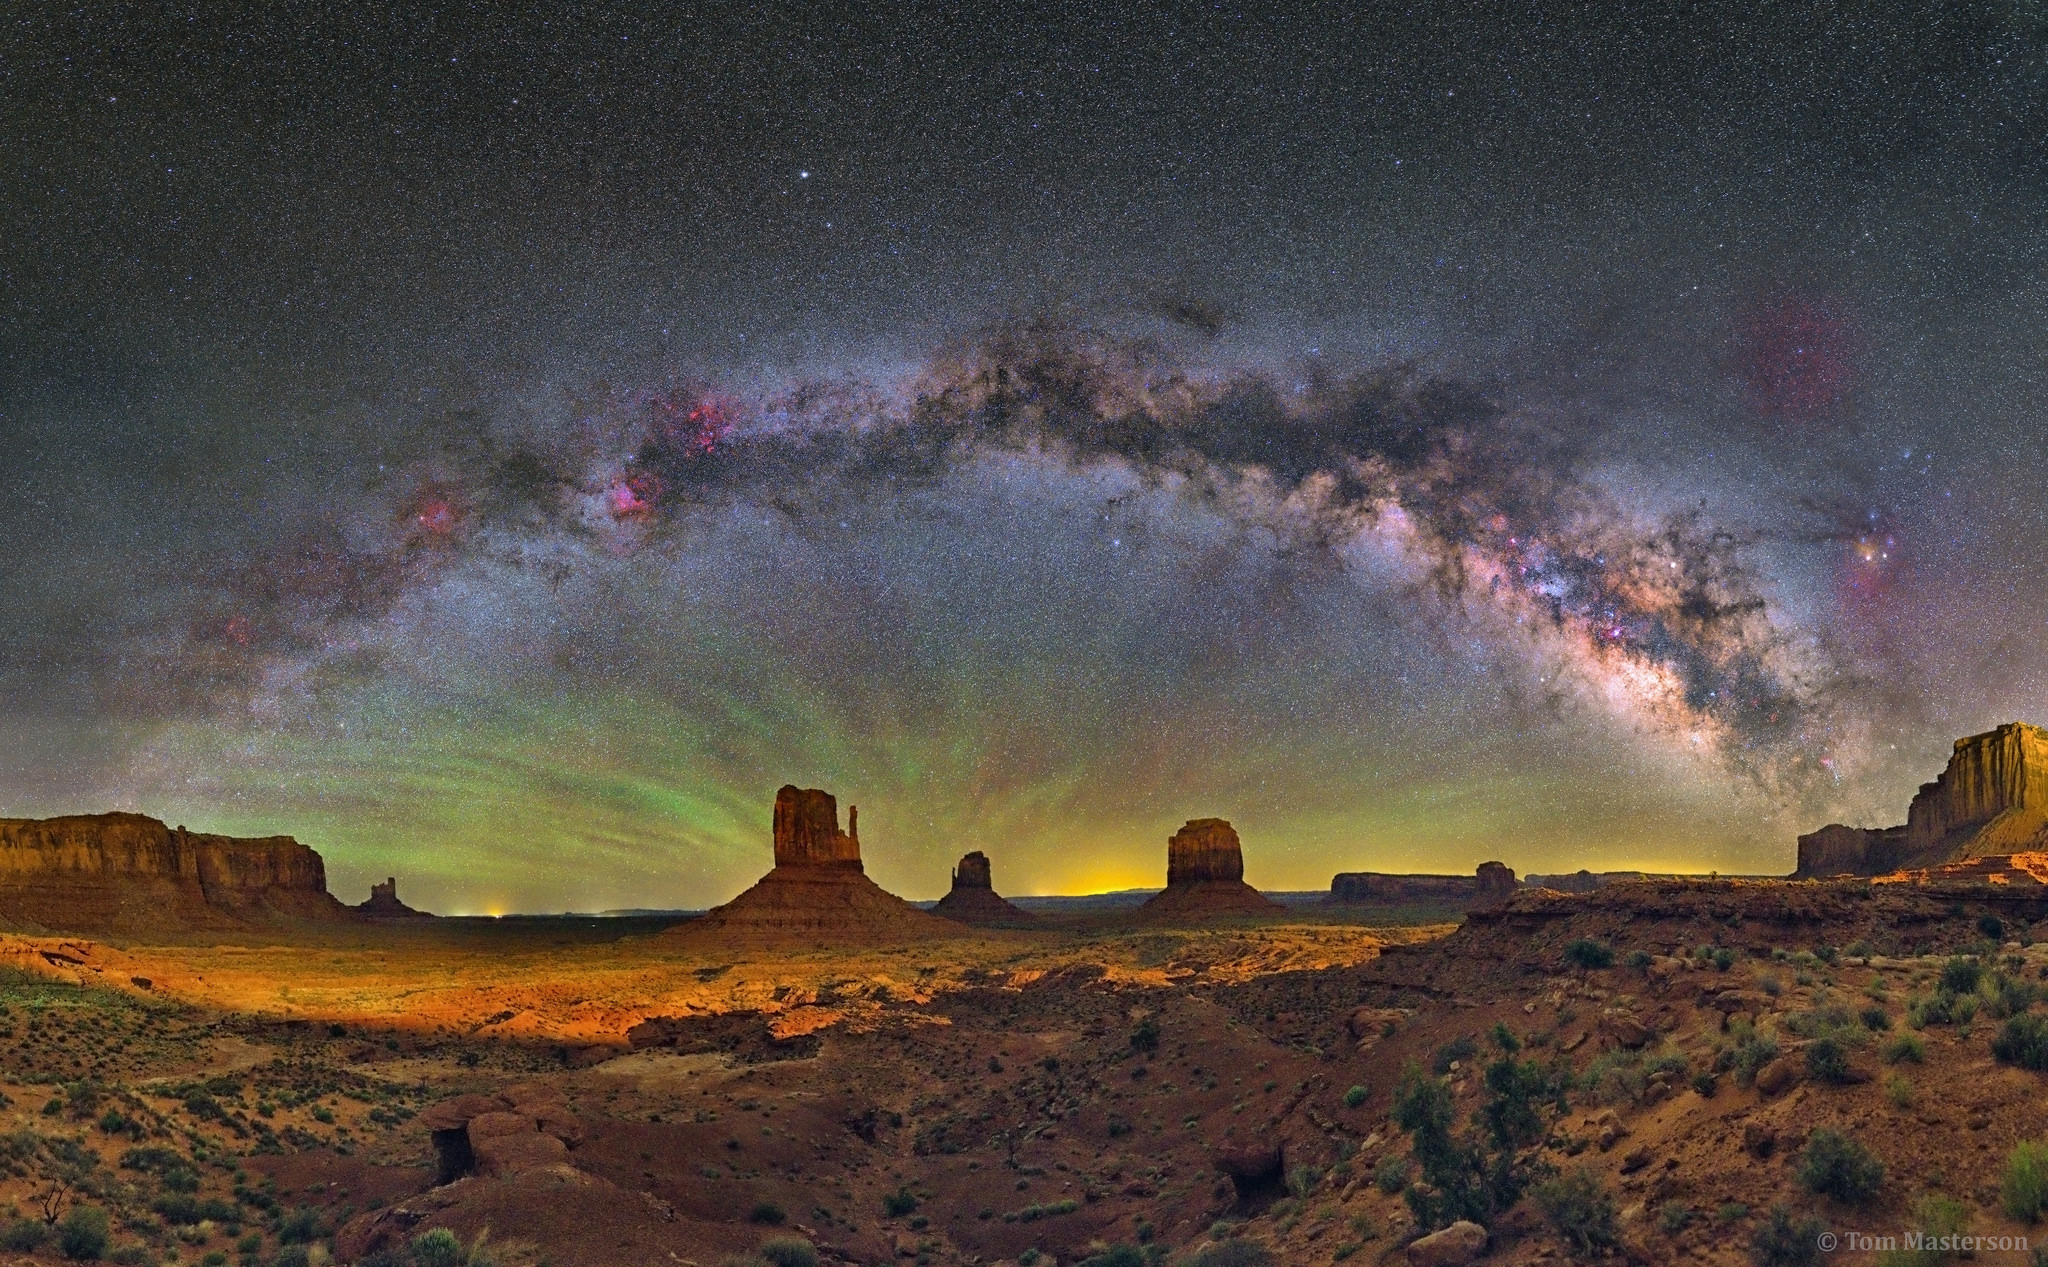 apod 2017 july 26 the milky way over monument valley